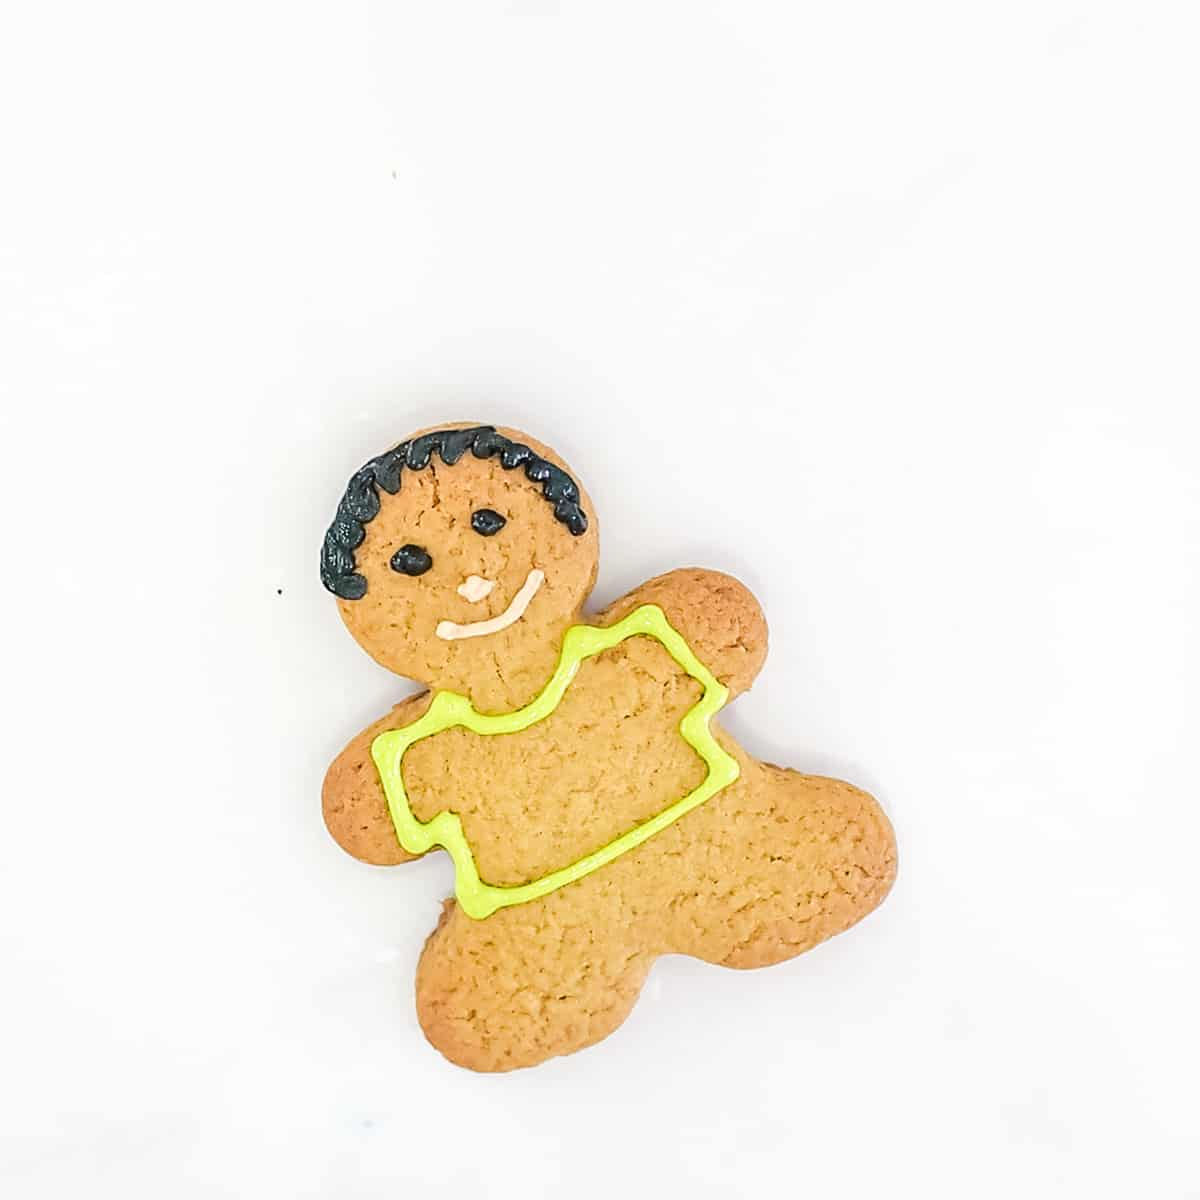 A gingerbread boy cookie with a green icing outline for the shirt